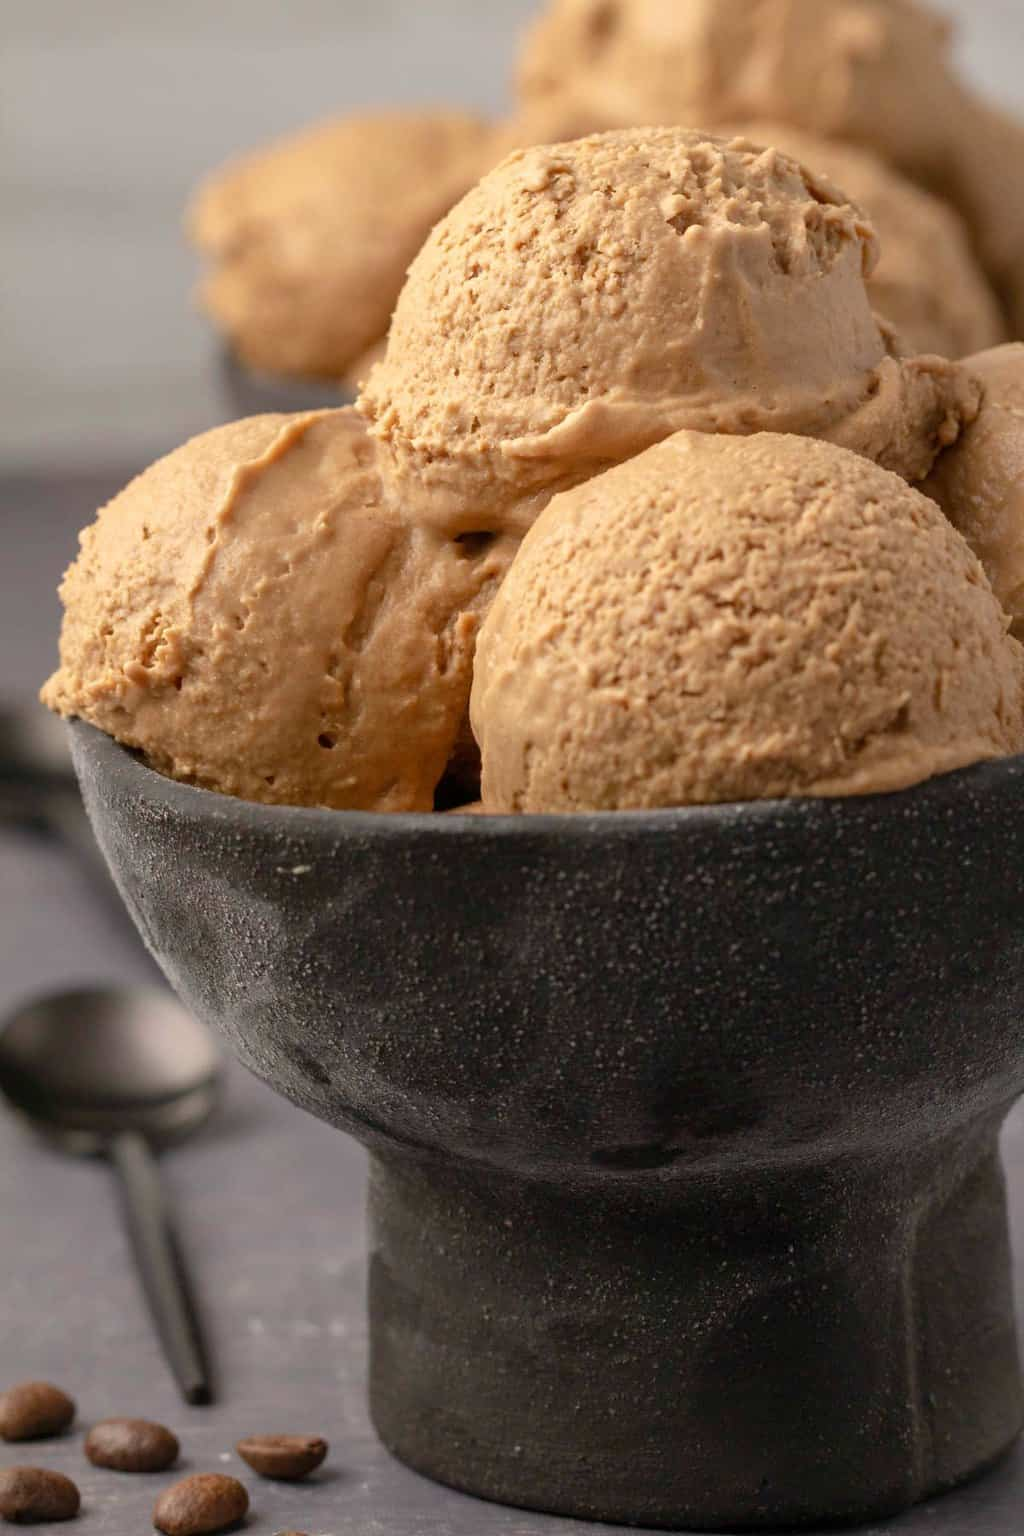 Scoops of vegan coffee ice cream in a black bowl.